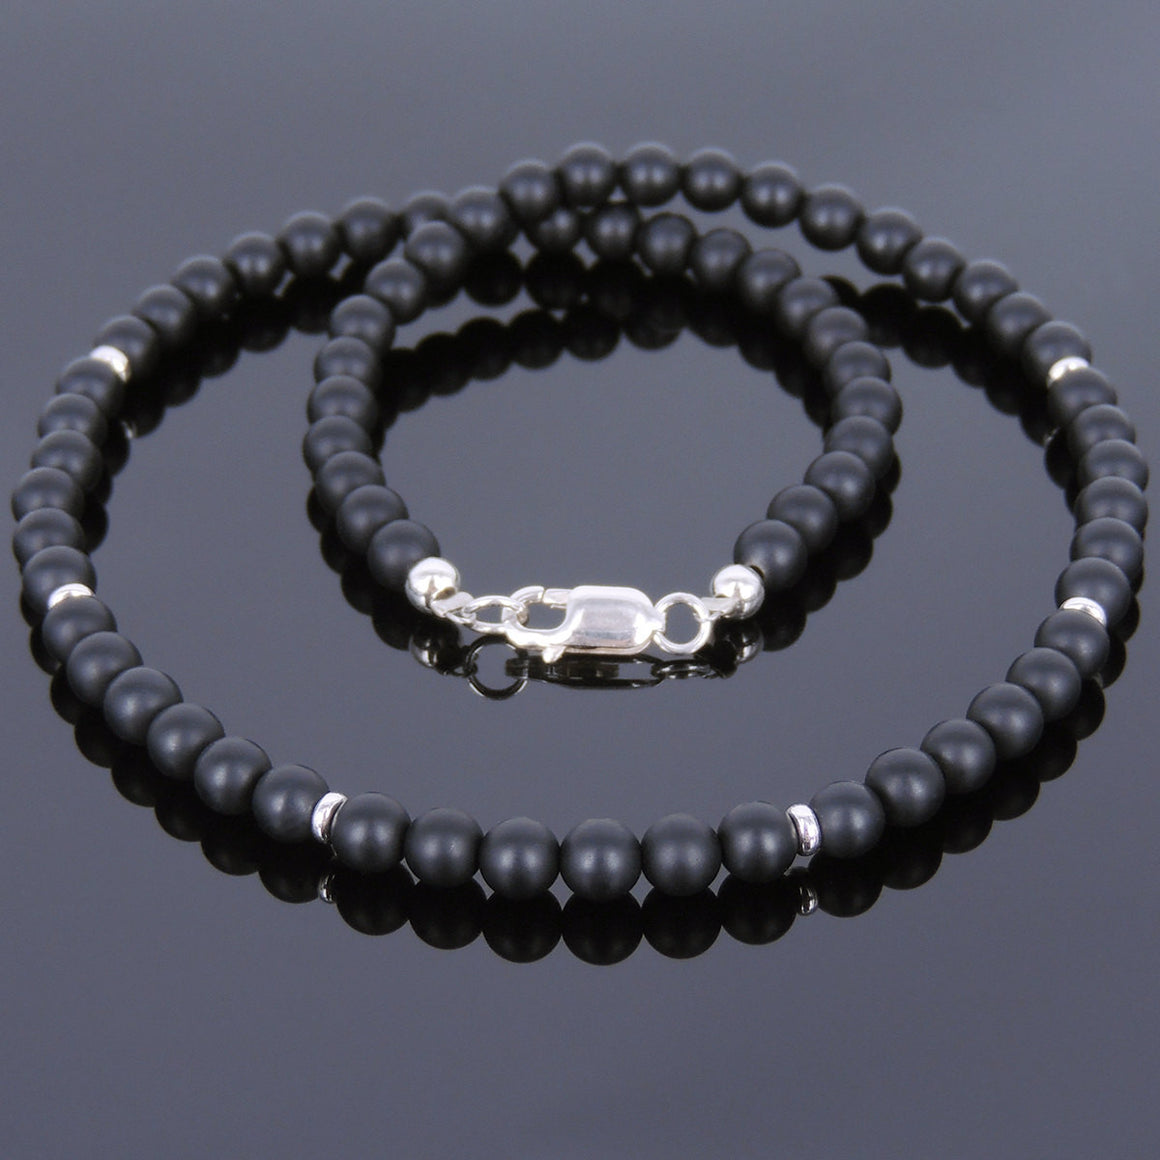 4mm Matte Black Onyx Healing Gemstone Necklace with S925 Sterling Silver Spacer Beads & Clasp - Handmade by Gem & Silver NK069